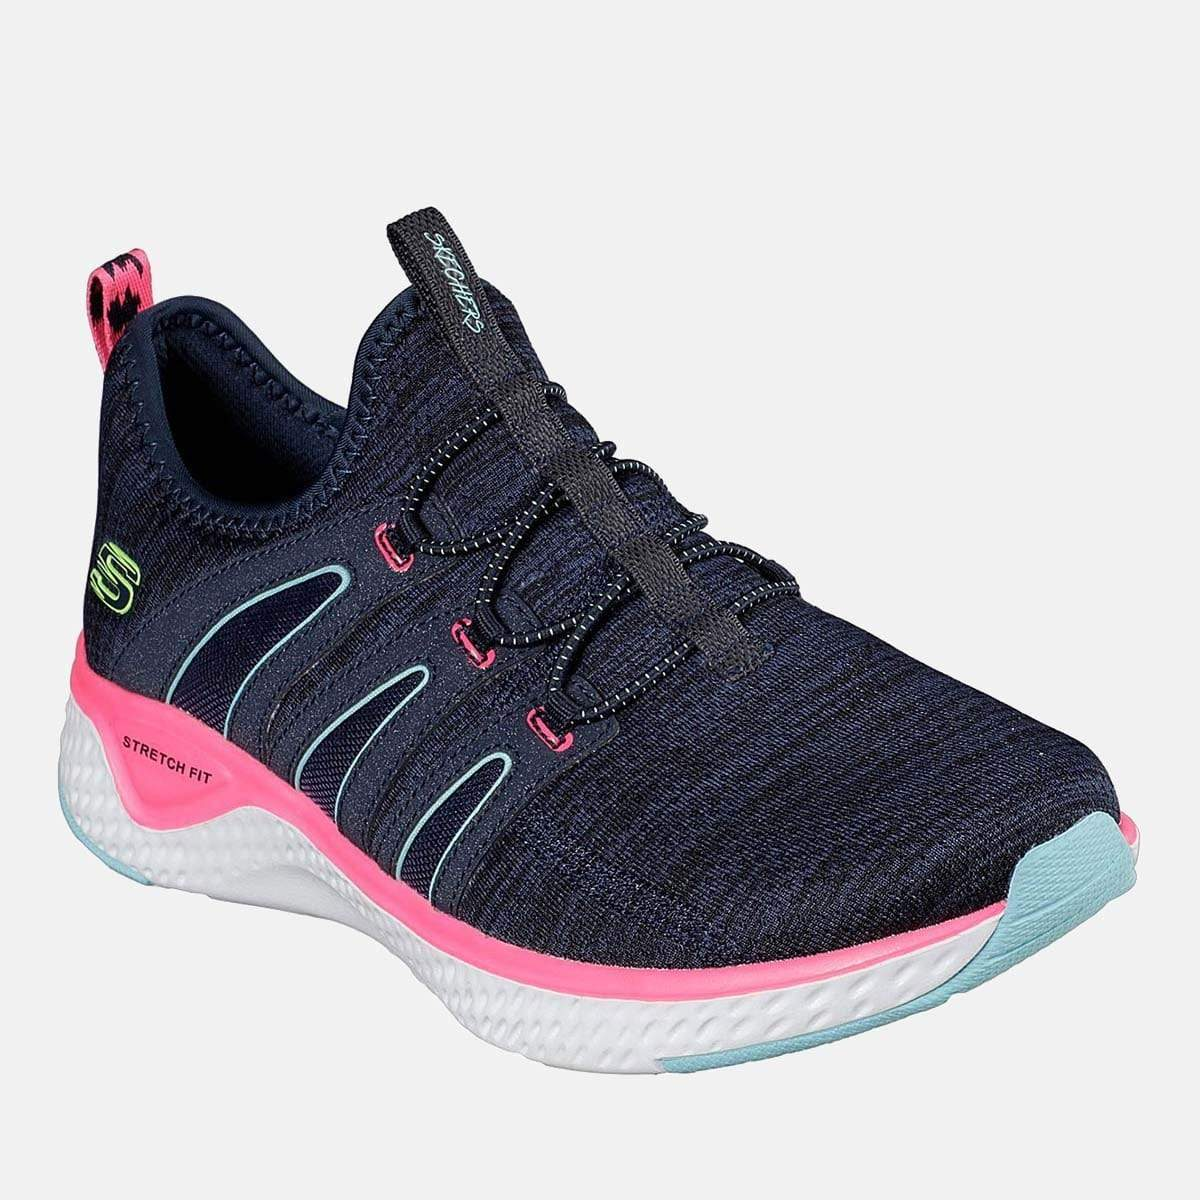 Skechers Footwear Solar Fuse Electric Pulse 13326 Navy Hot Pink